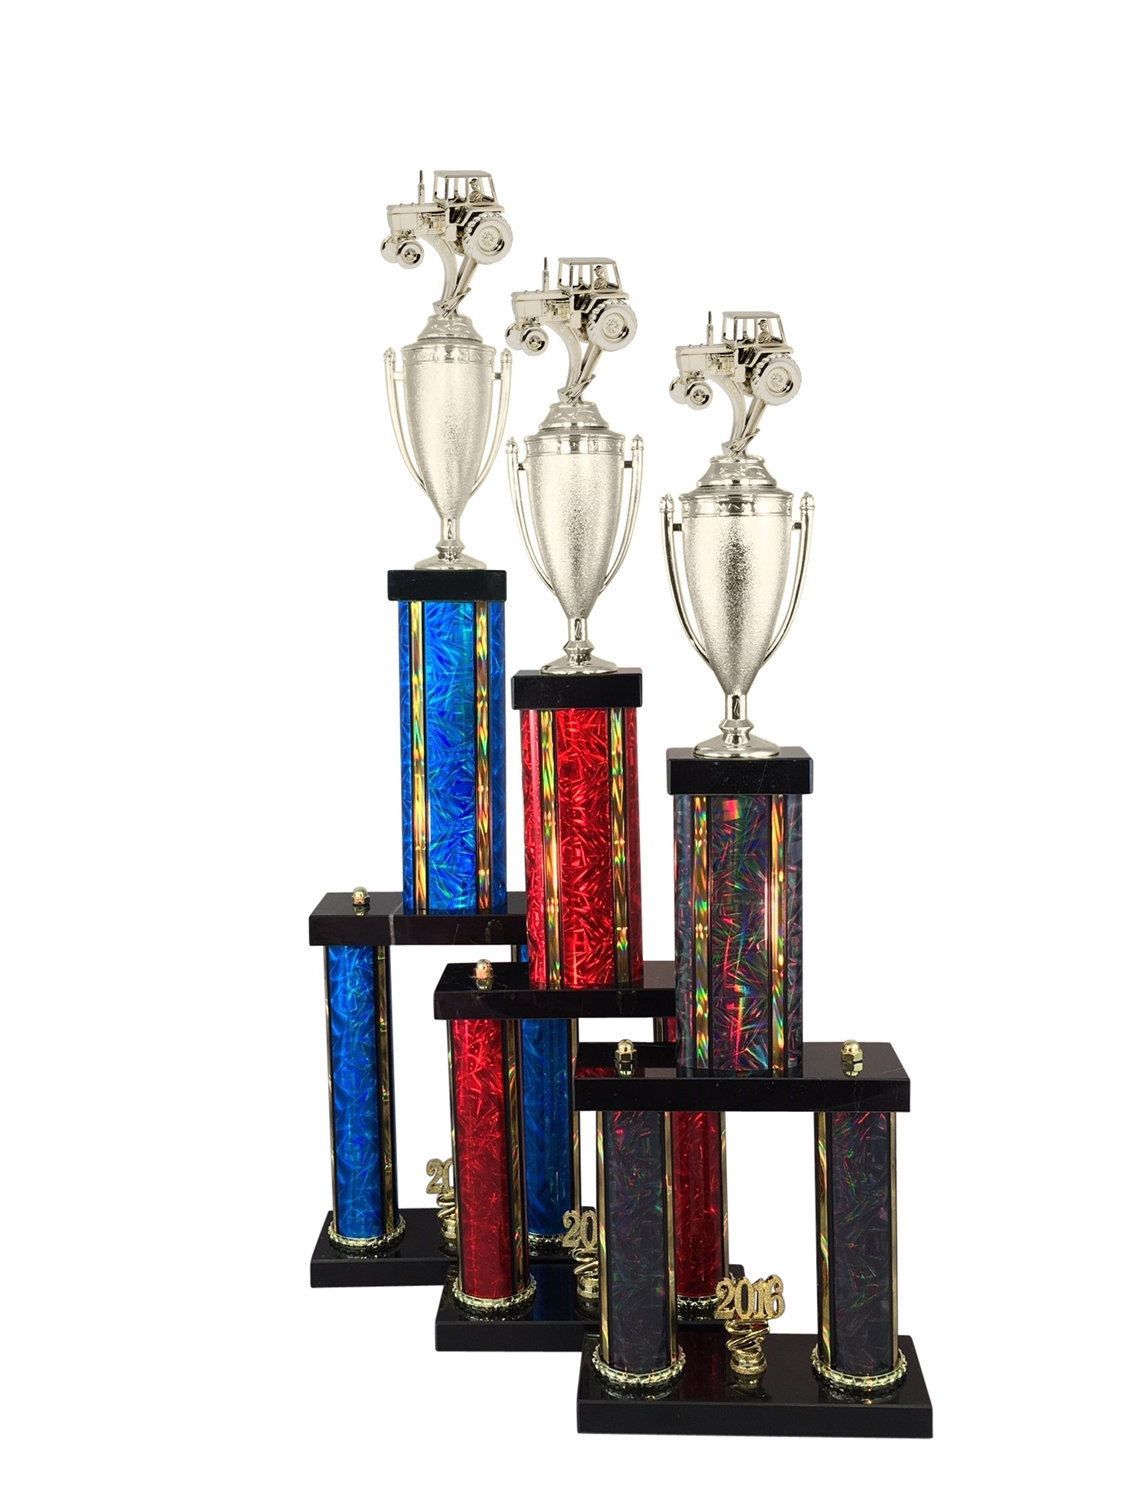 2 Column Tractor Trophy in 11 Color & 6 Size Options